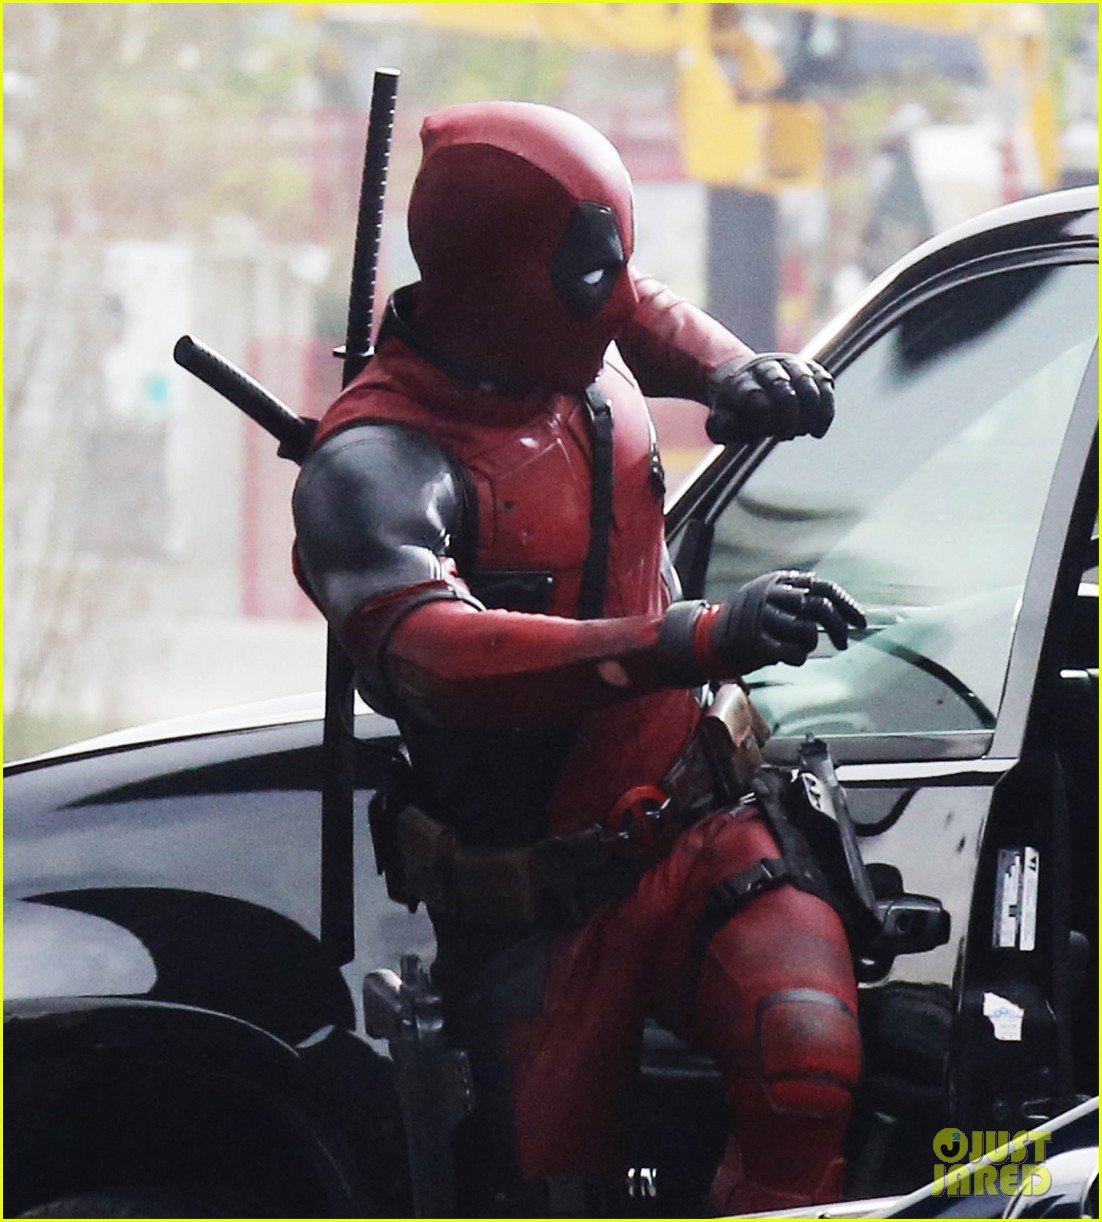 http://cdn04.cdn.justjared.com/wp-content/uploads/2015/04/reynolds-set/ryan-reynolds-films-some-deadpool-scenes-08.jpg